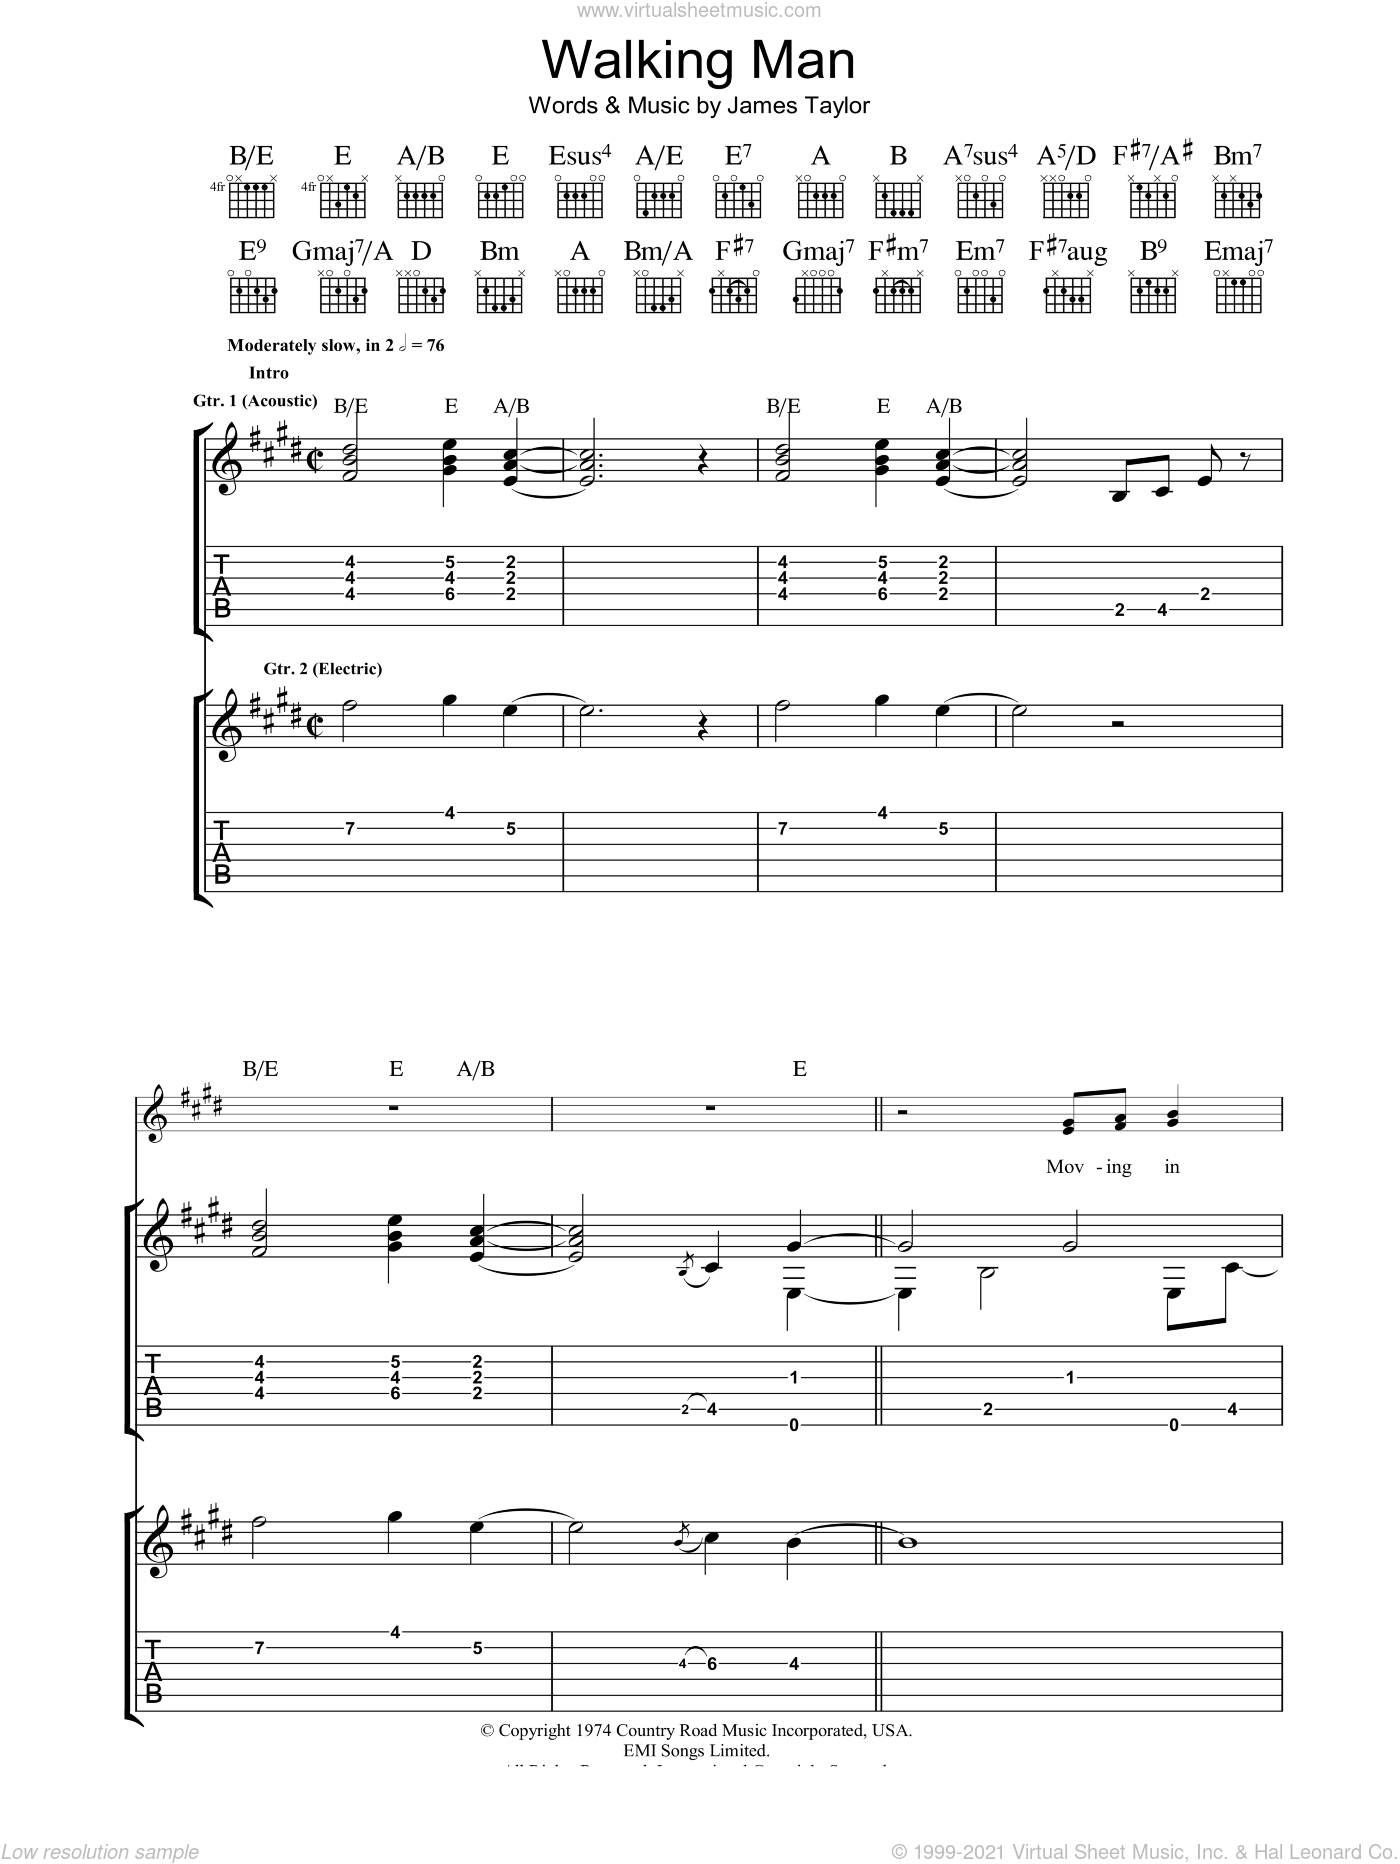 Walking Man sheet music for guitar (tablature) by James Taylor. Score Image Preview.